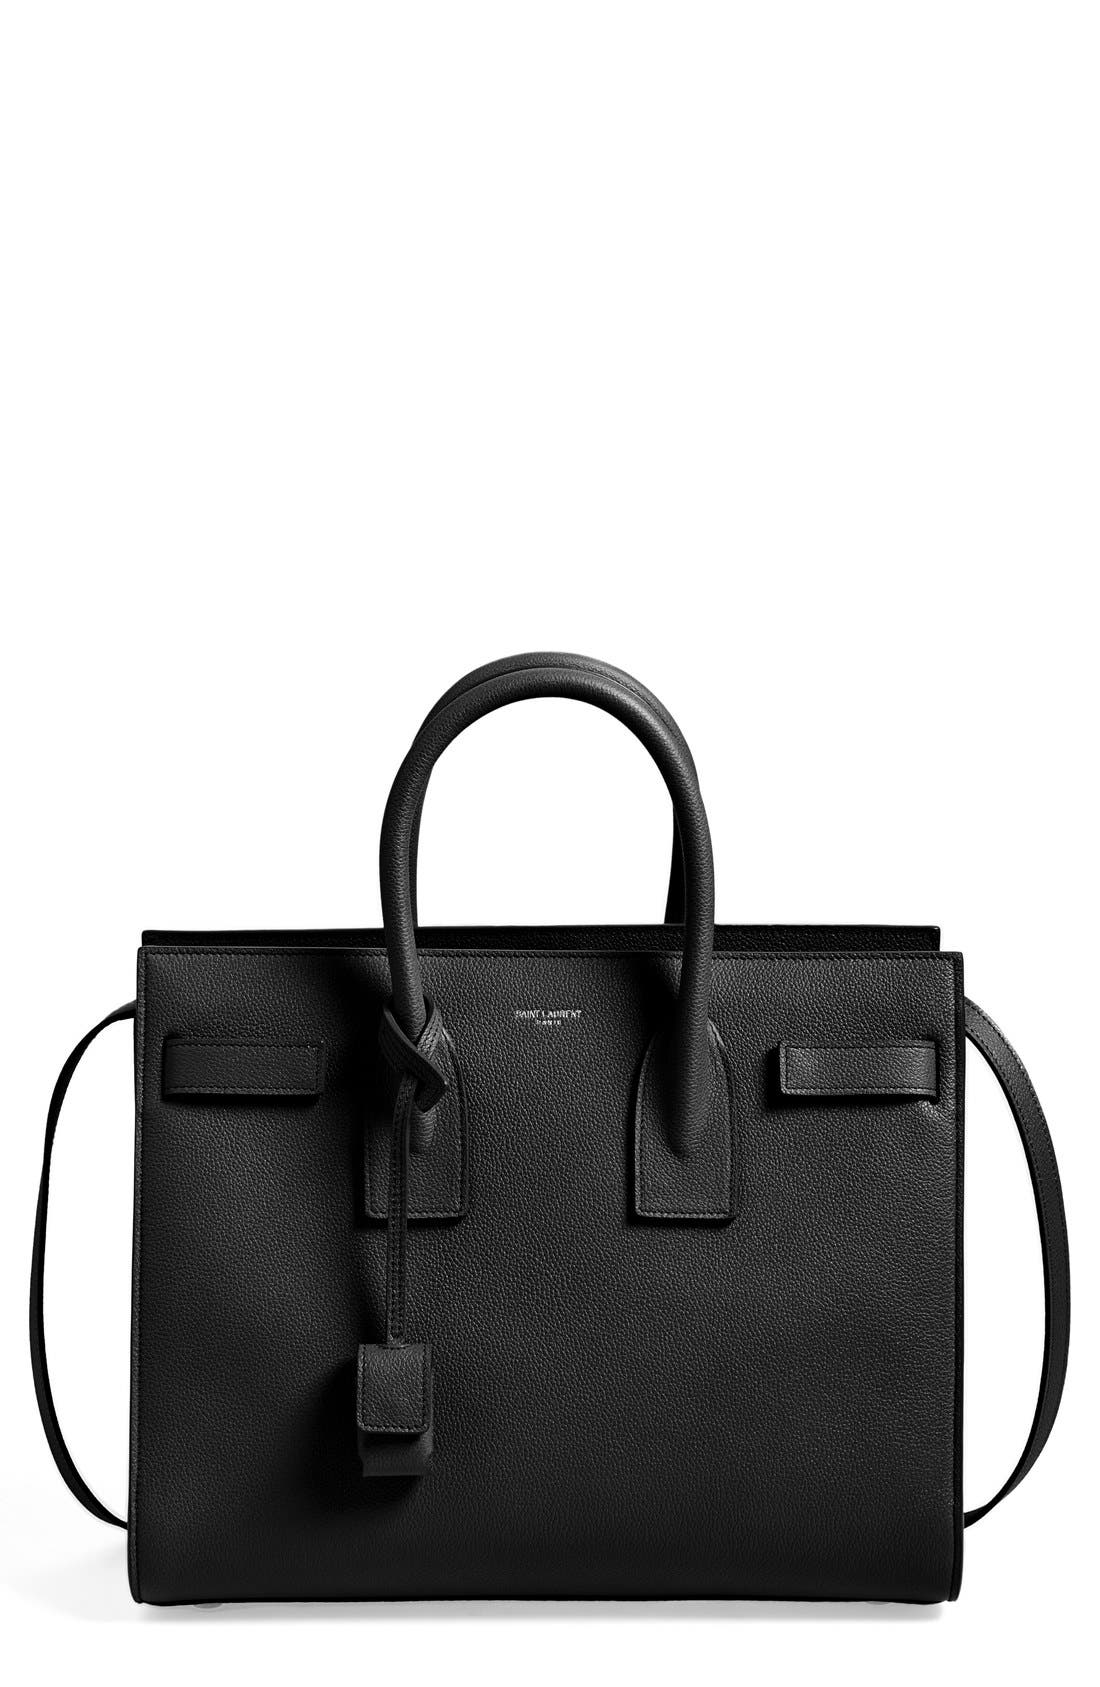 SAINT LAURENT 'Small Sac de Jour' Grained Leather